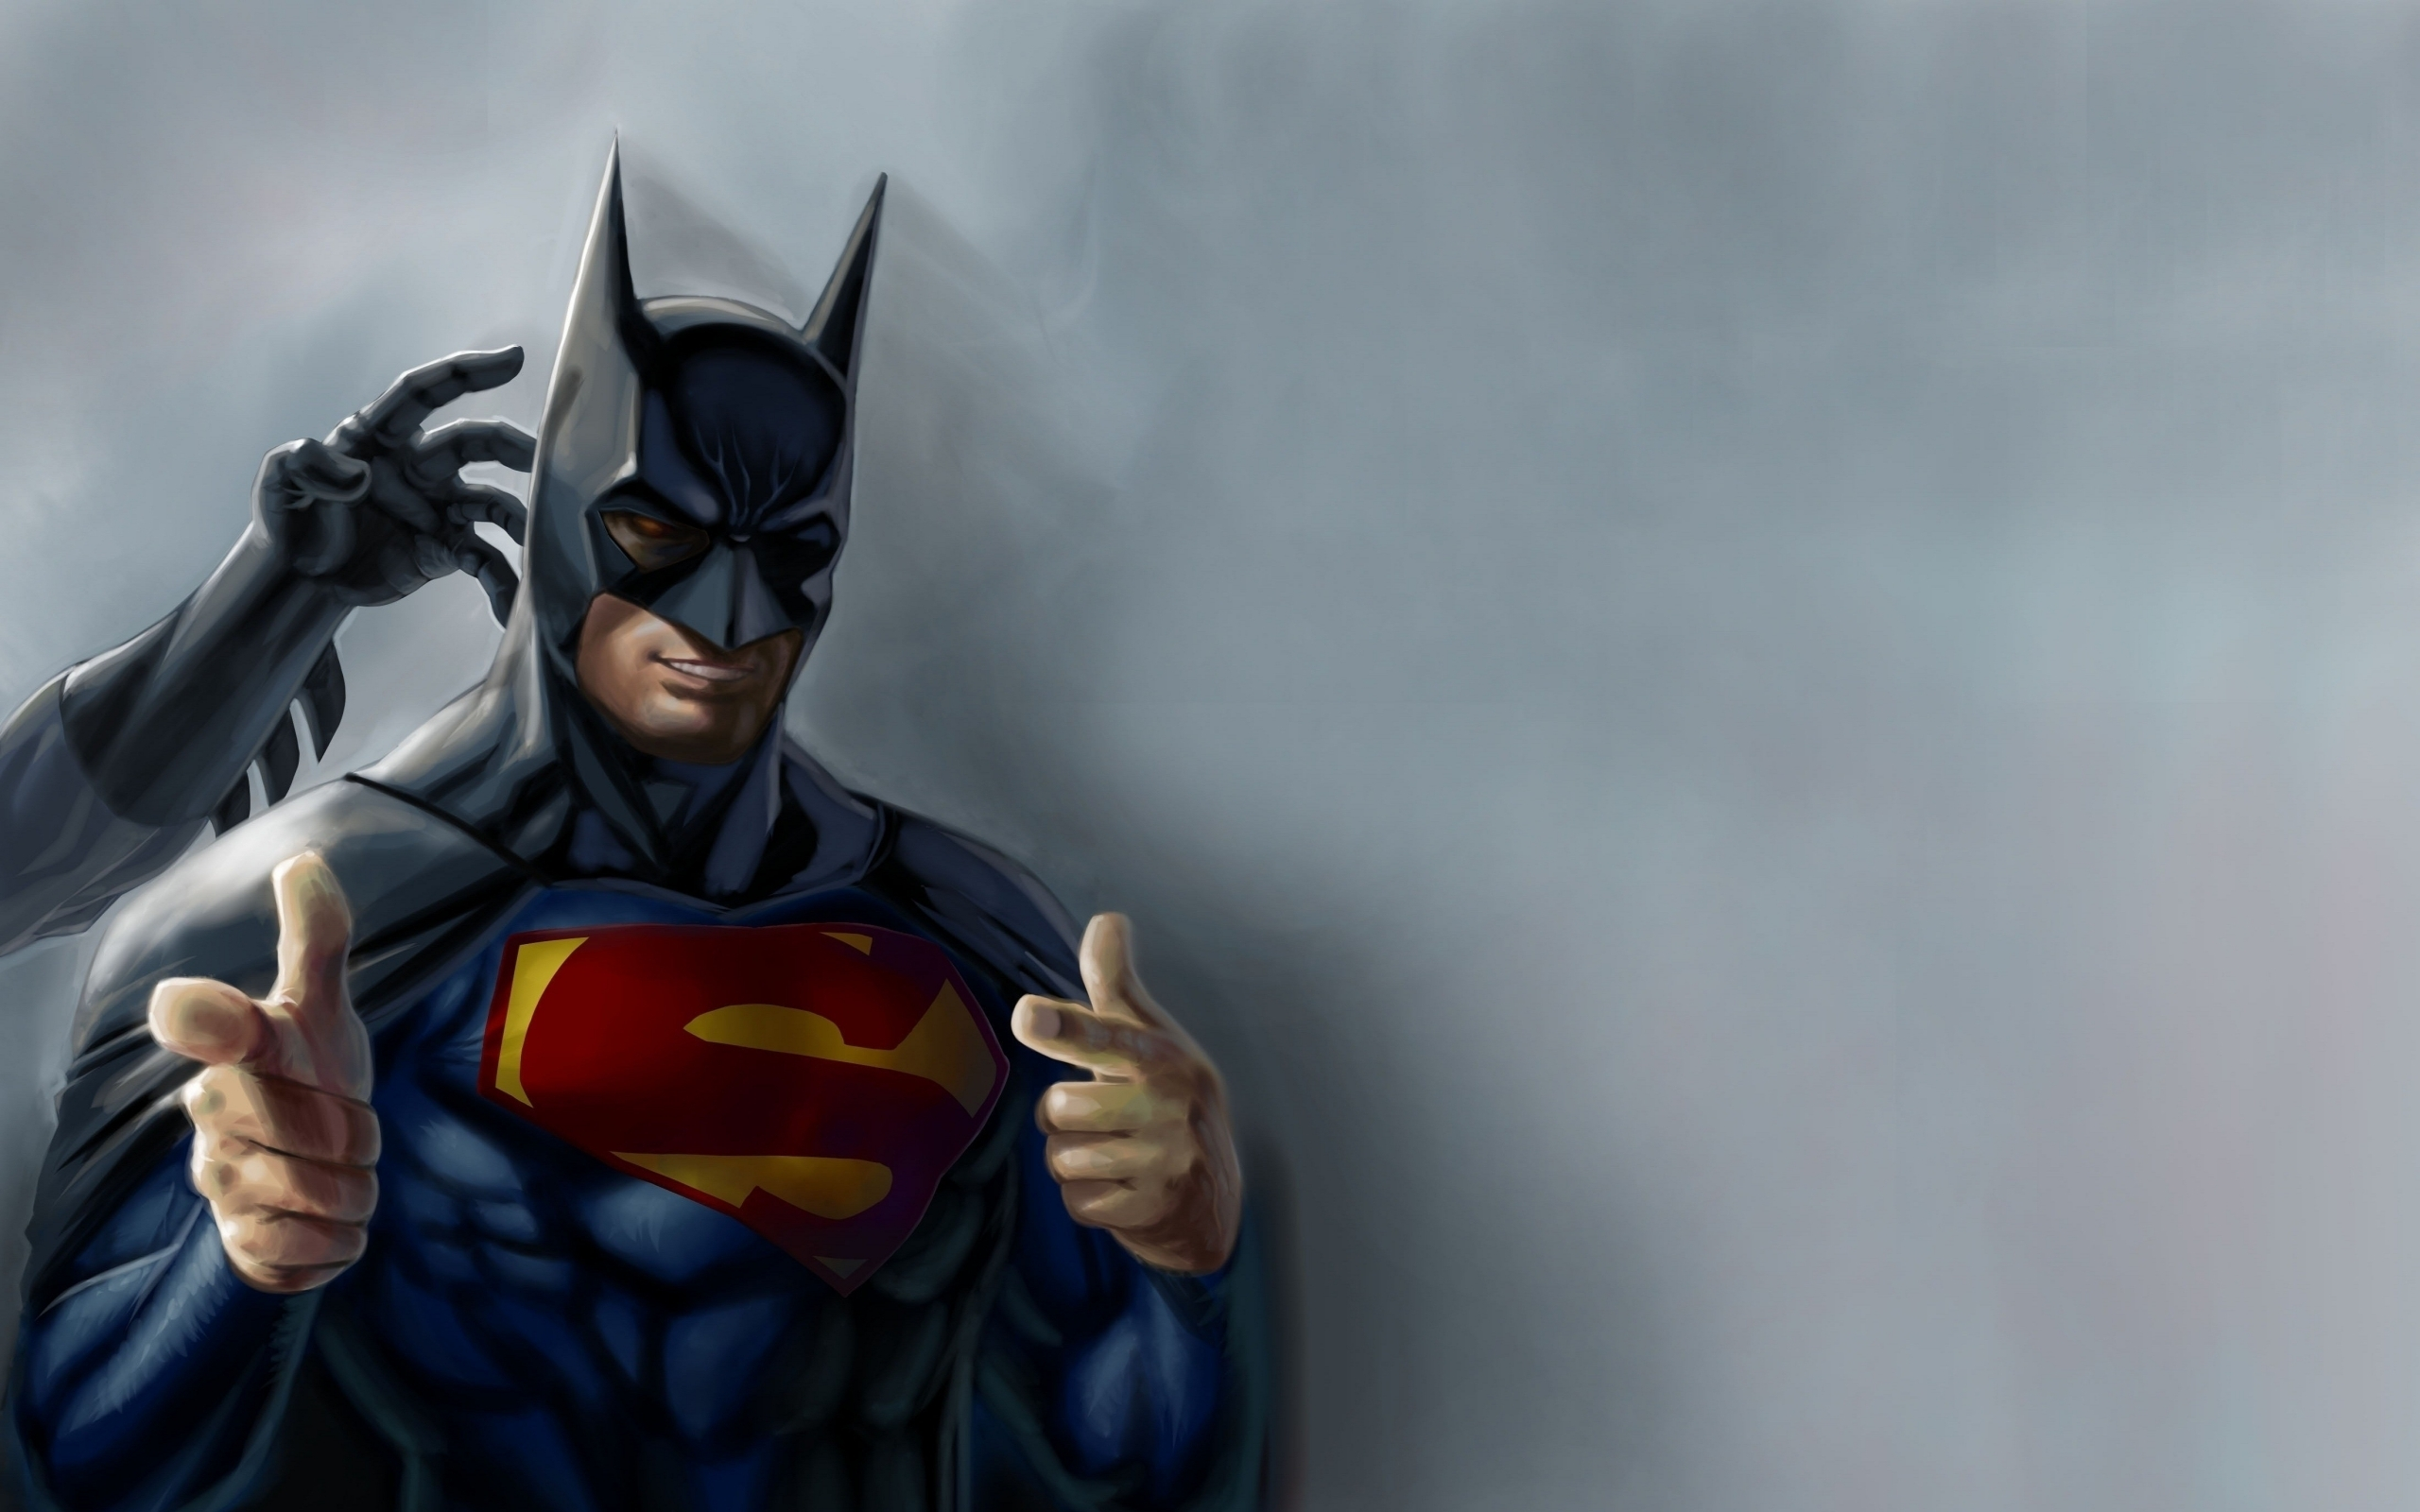 Wallpaper HD Batman and Superman   HD Wallpaper Expert 2560x1600